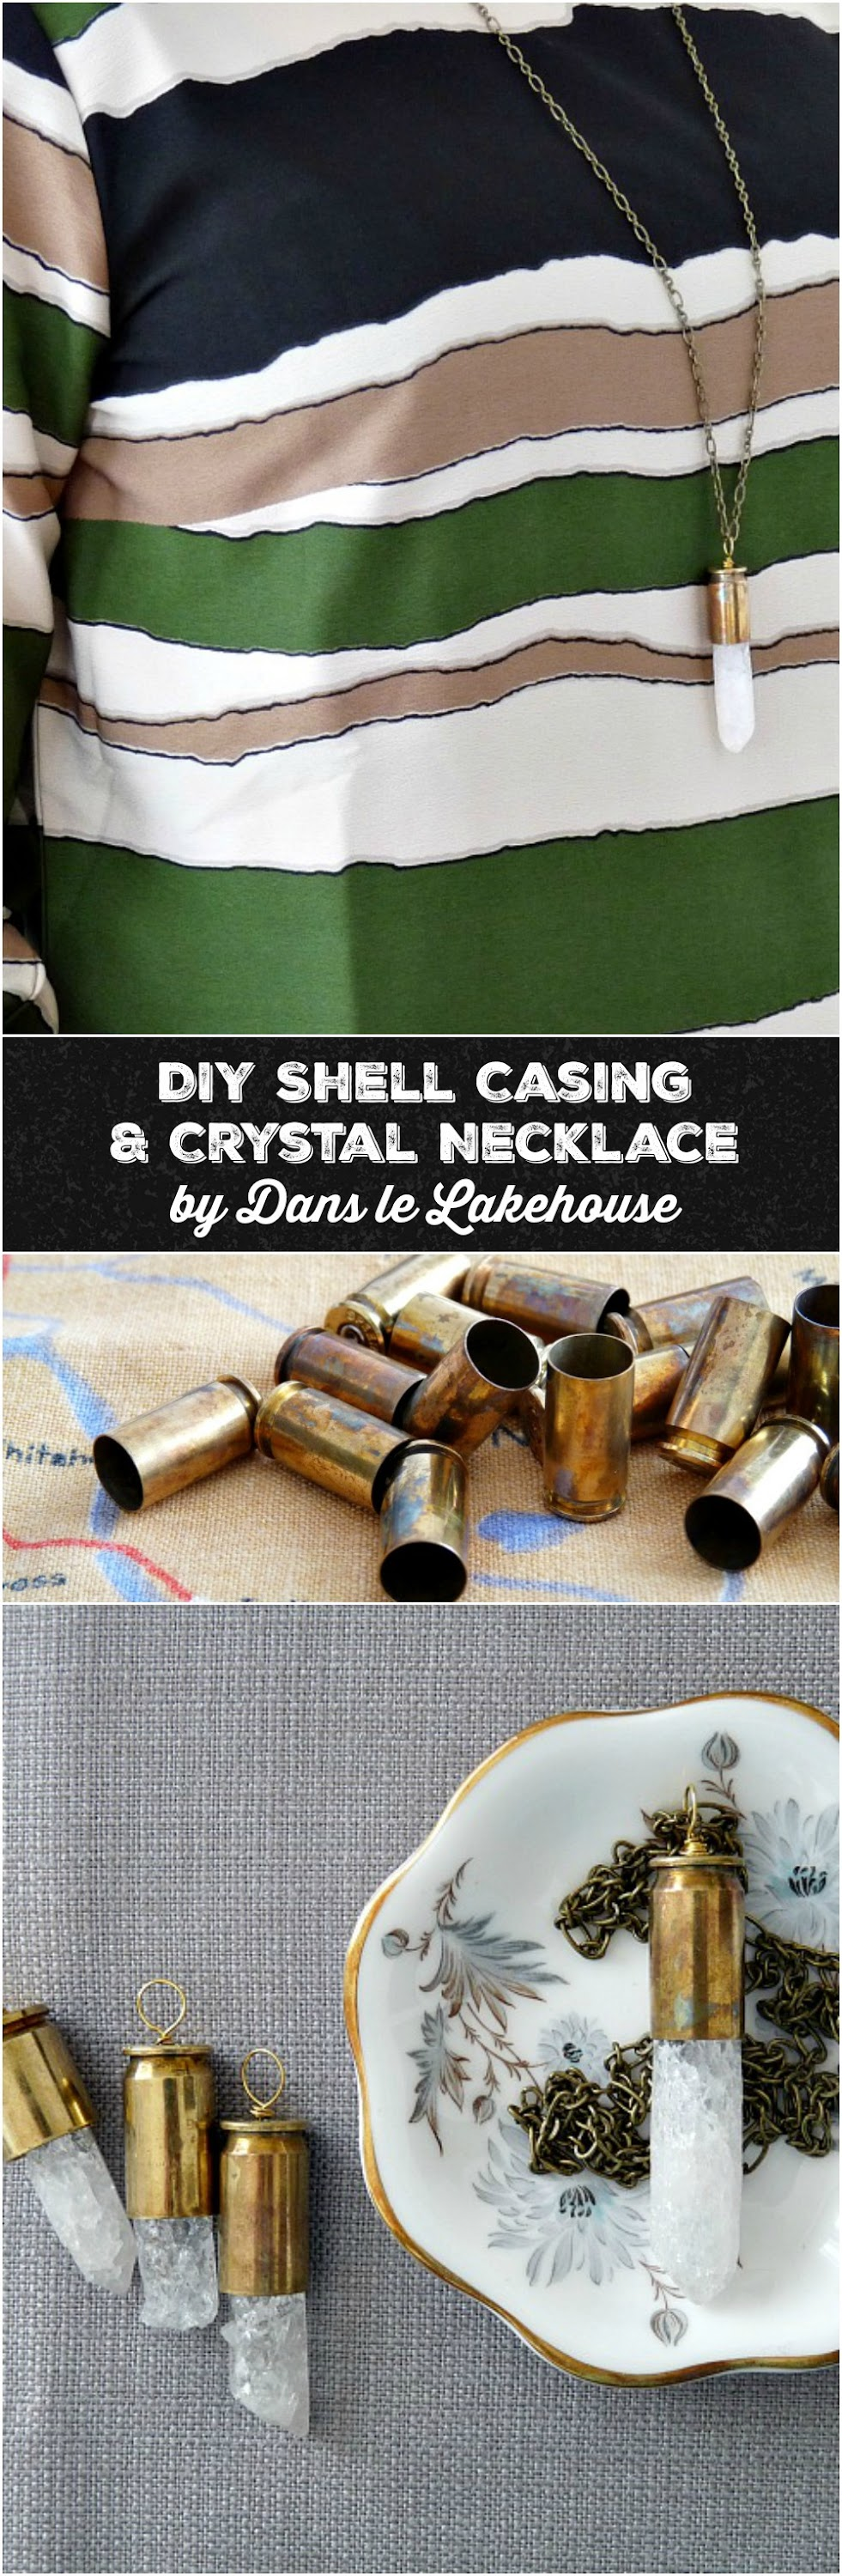 DIY shell casing and crysal necklace / Great step-by-step tutorial and this blog has lots of other DIY jewelry projects too!